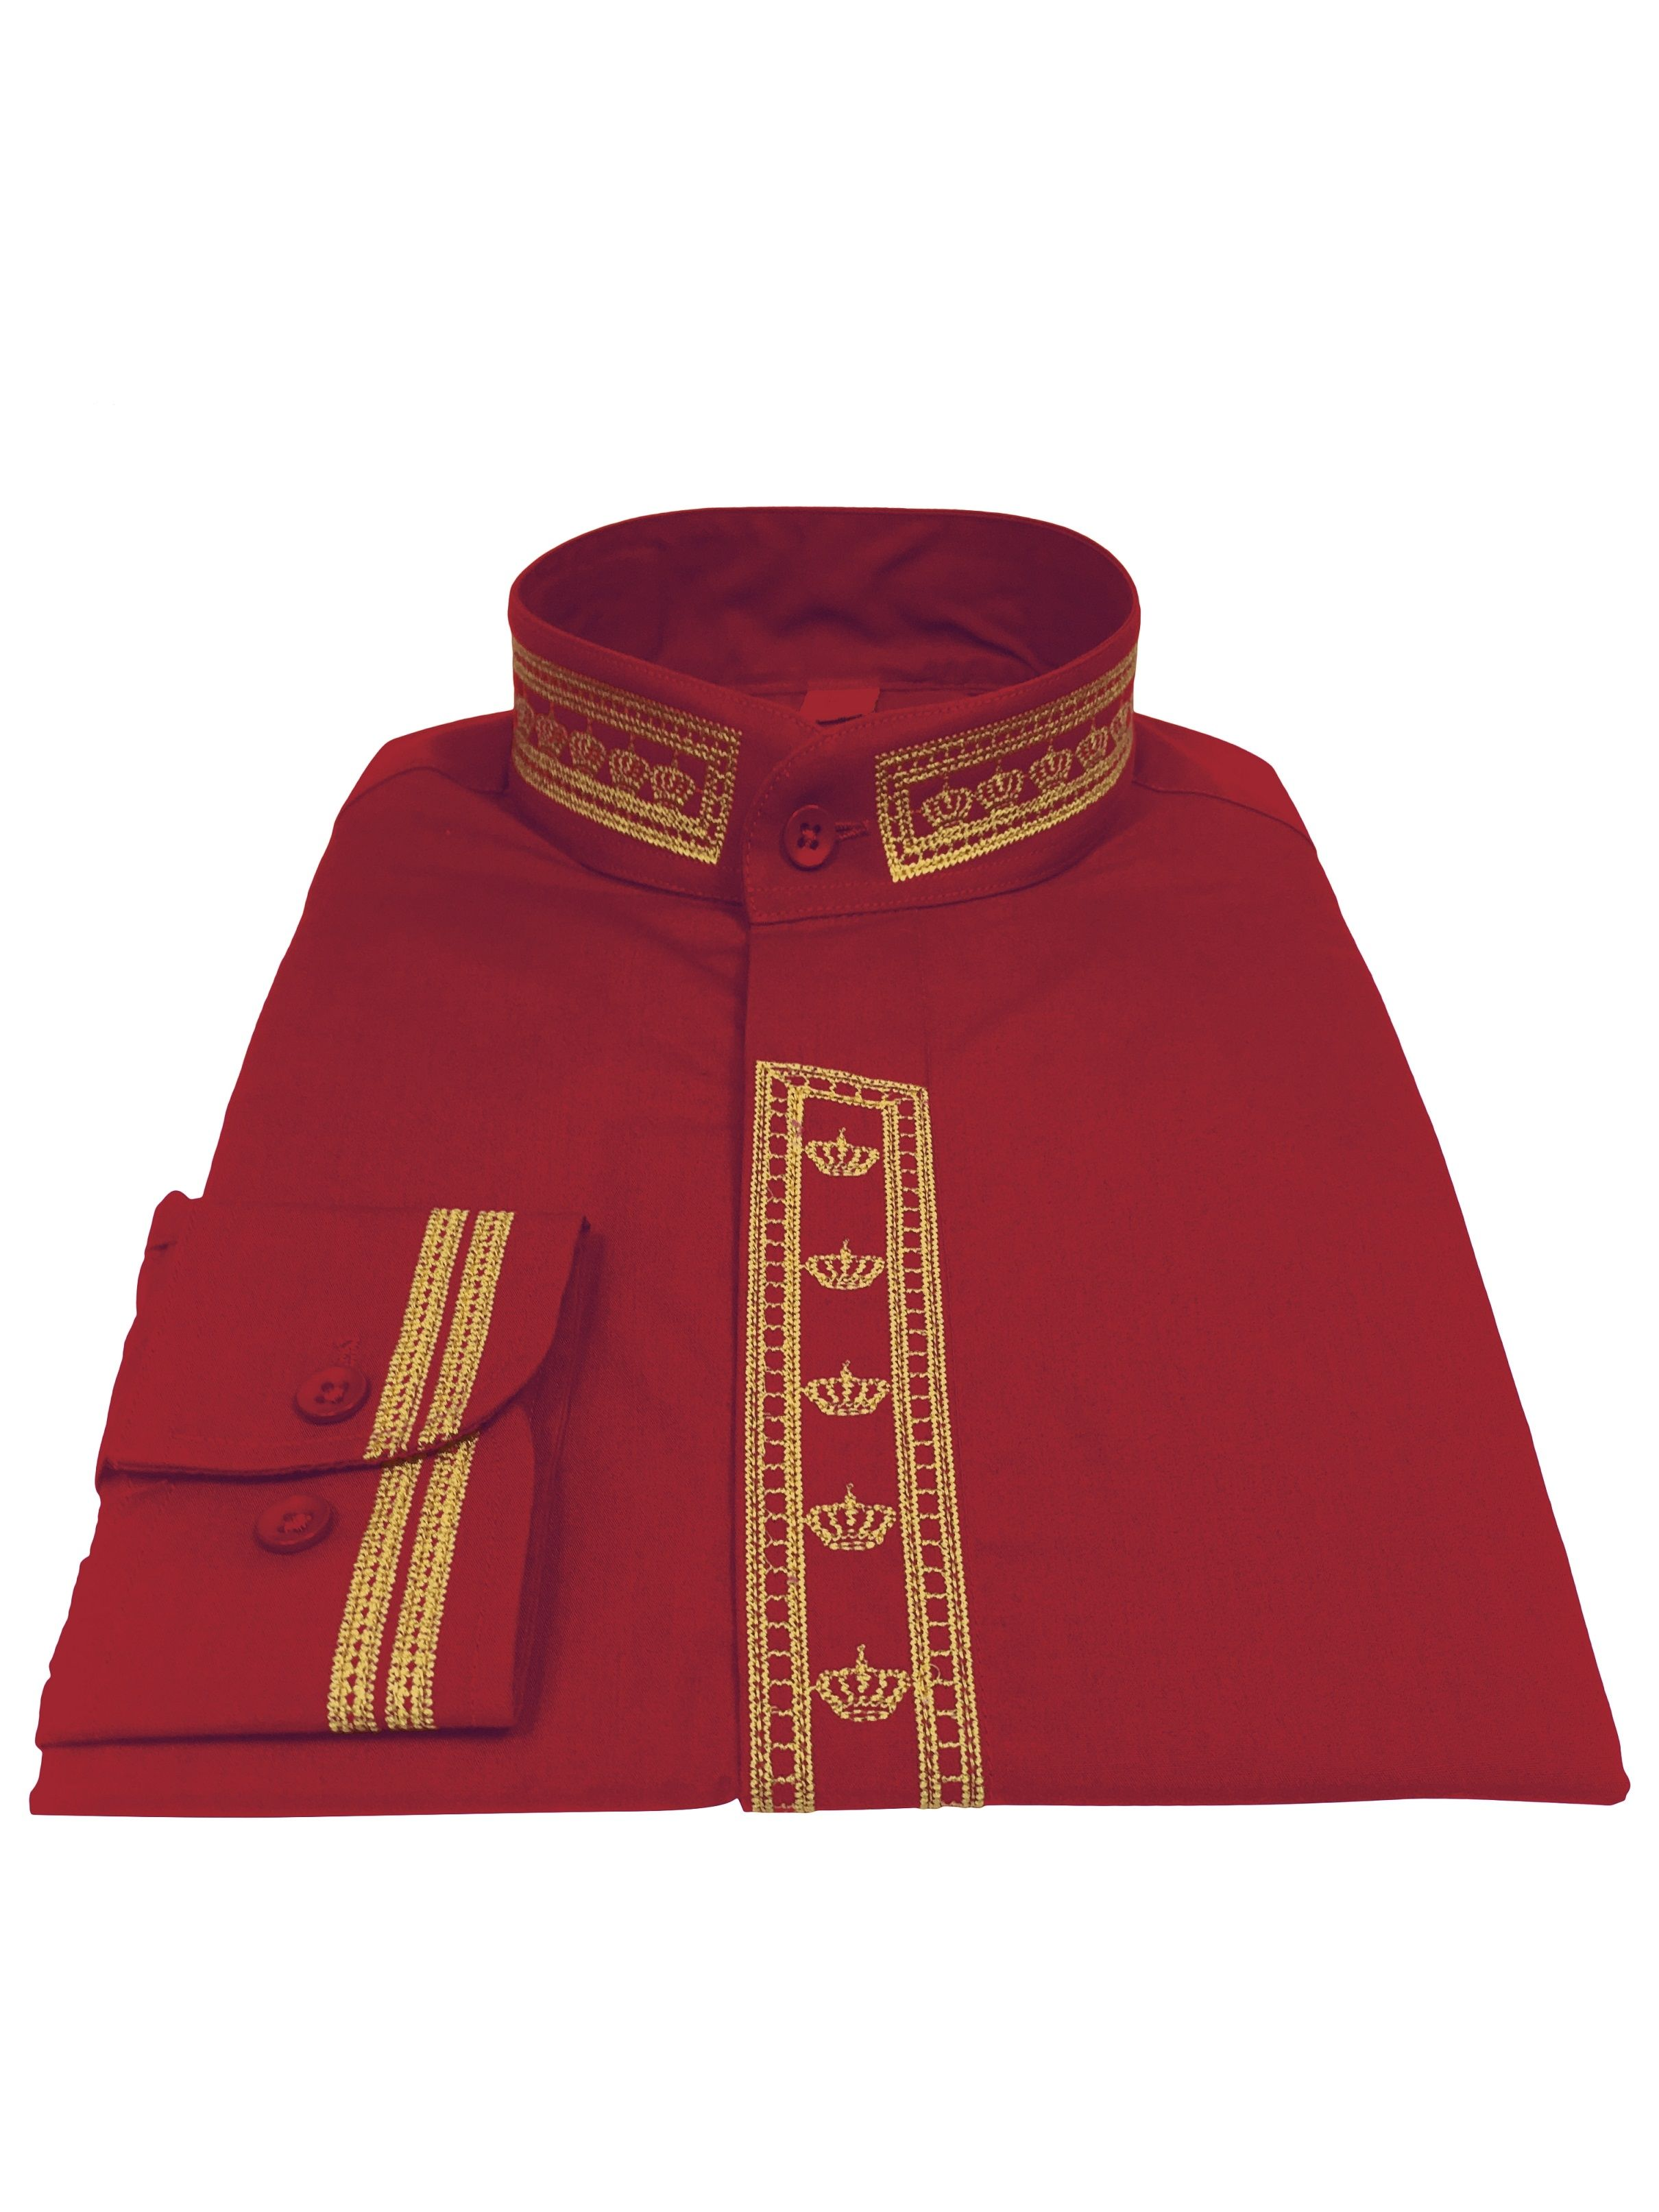 348. Men's Clergy Shirt With Rejoice Crown Fine Embroidery Long Sleeves- Red/Gold